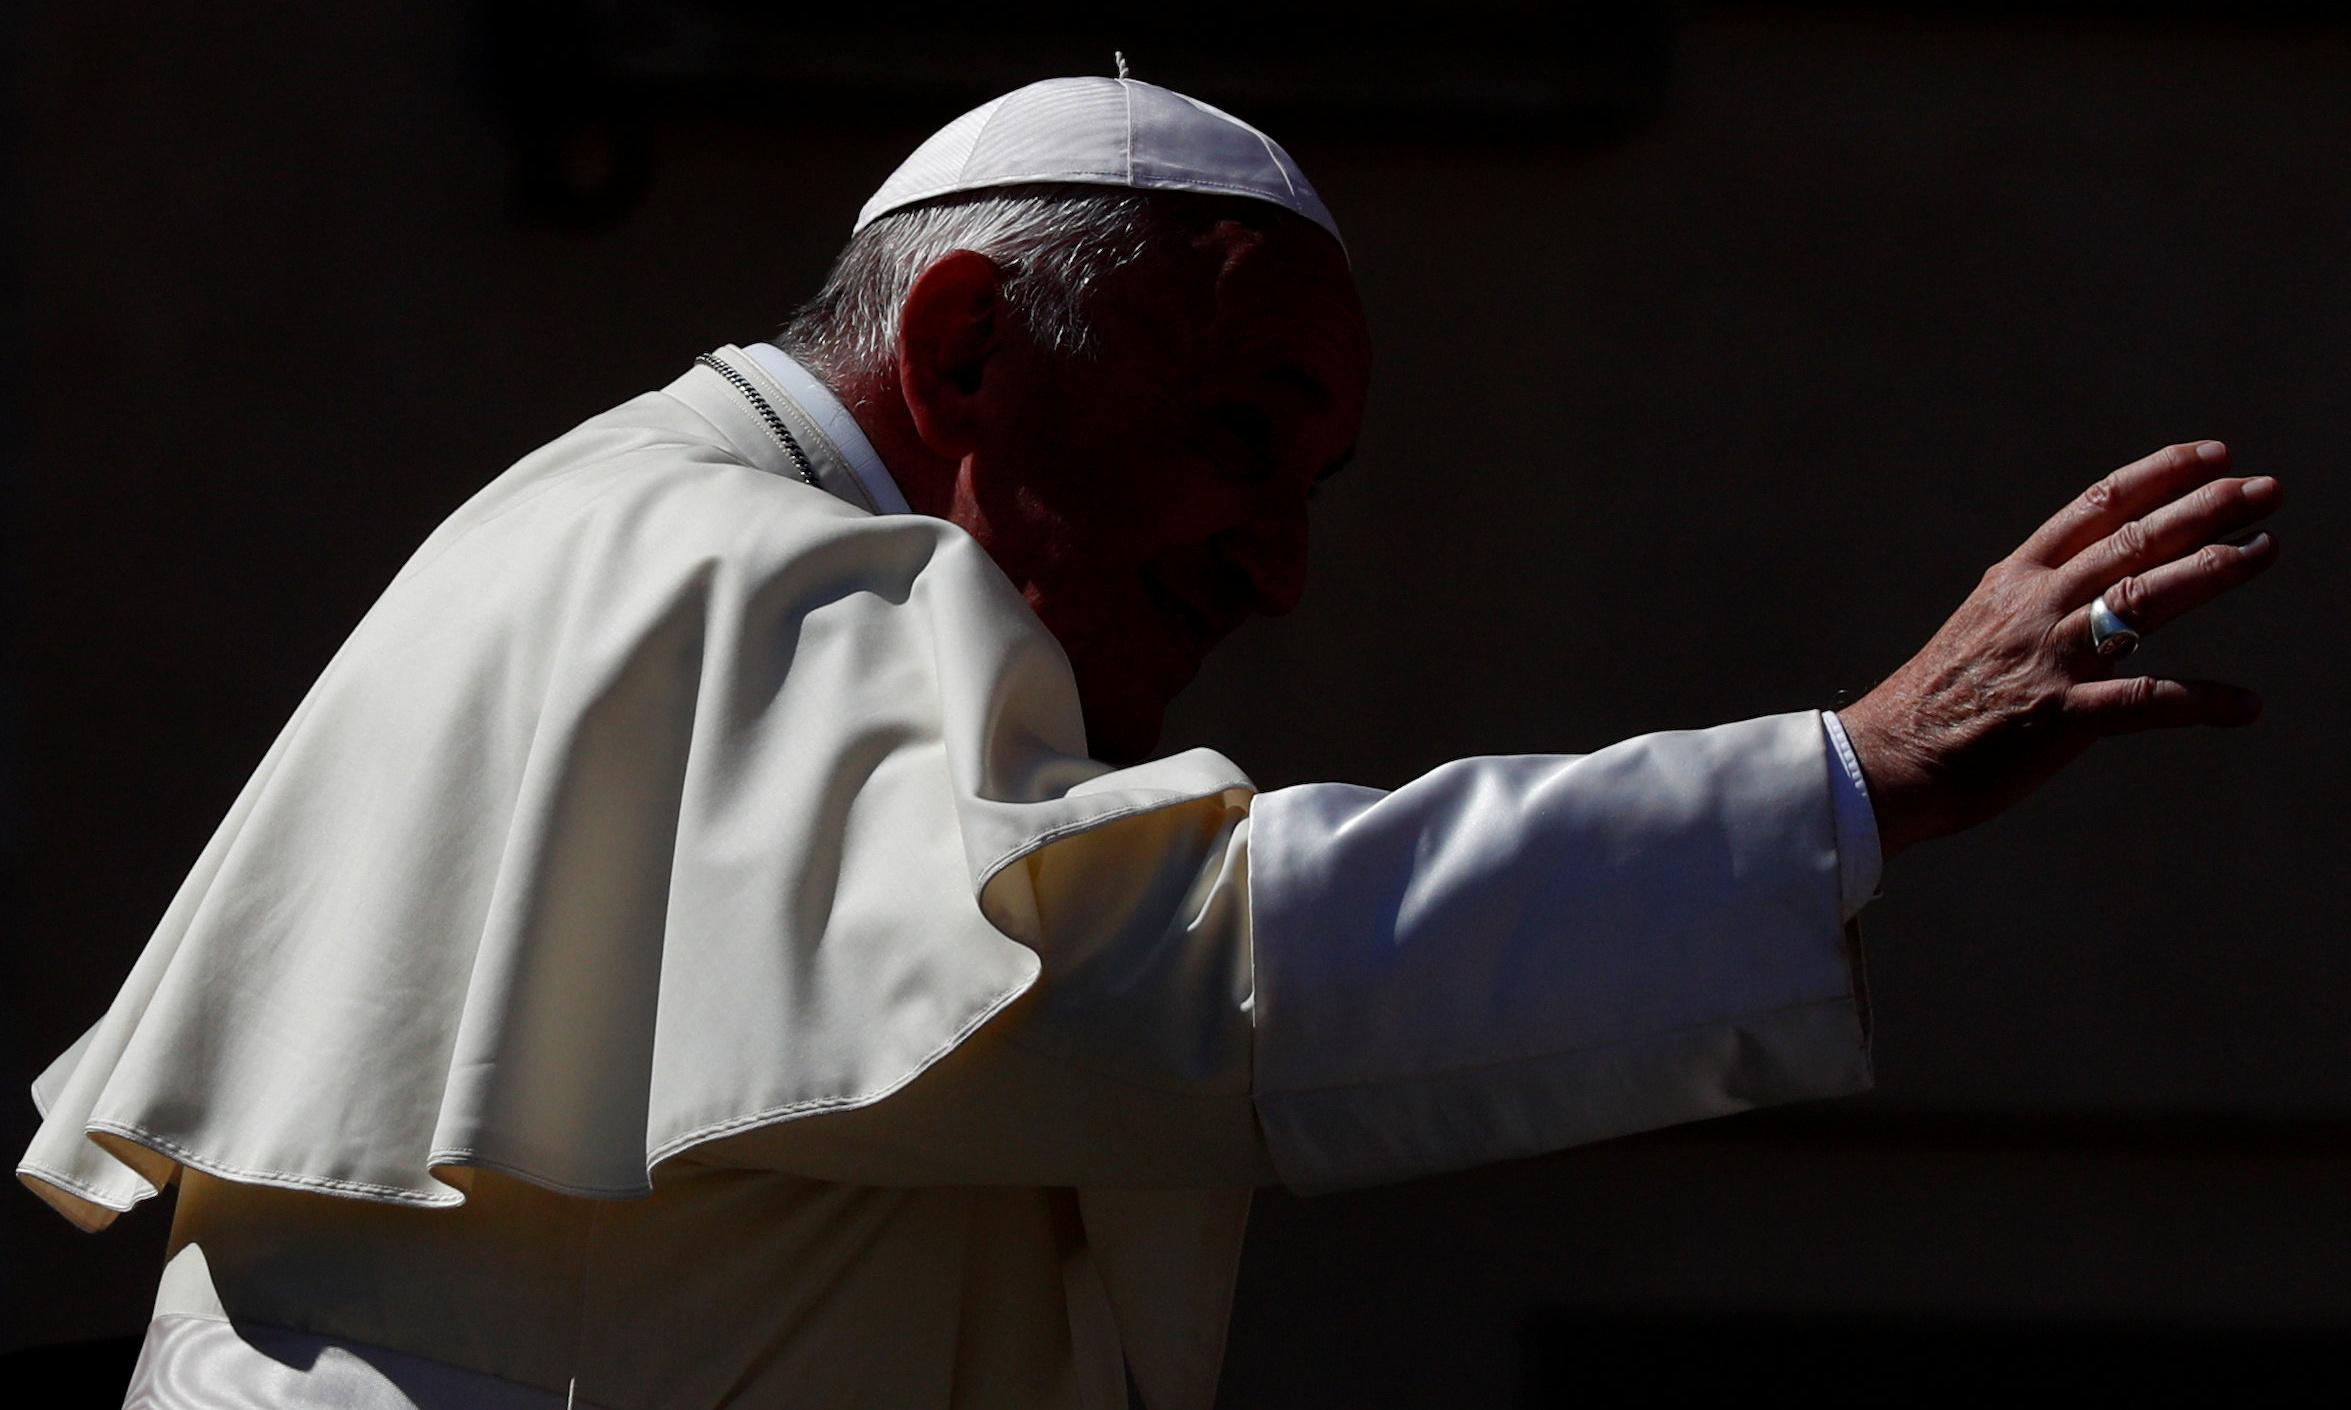 Why the Catholic church is still a force for good